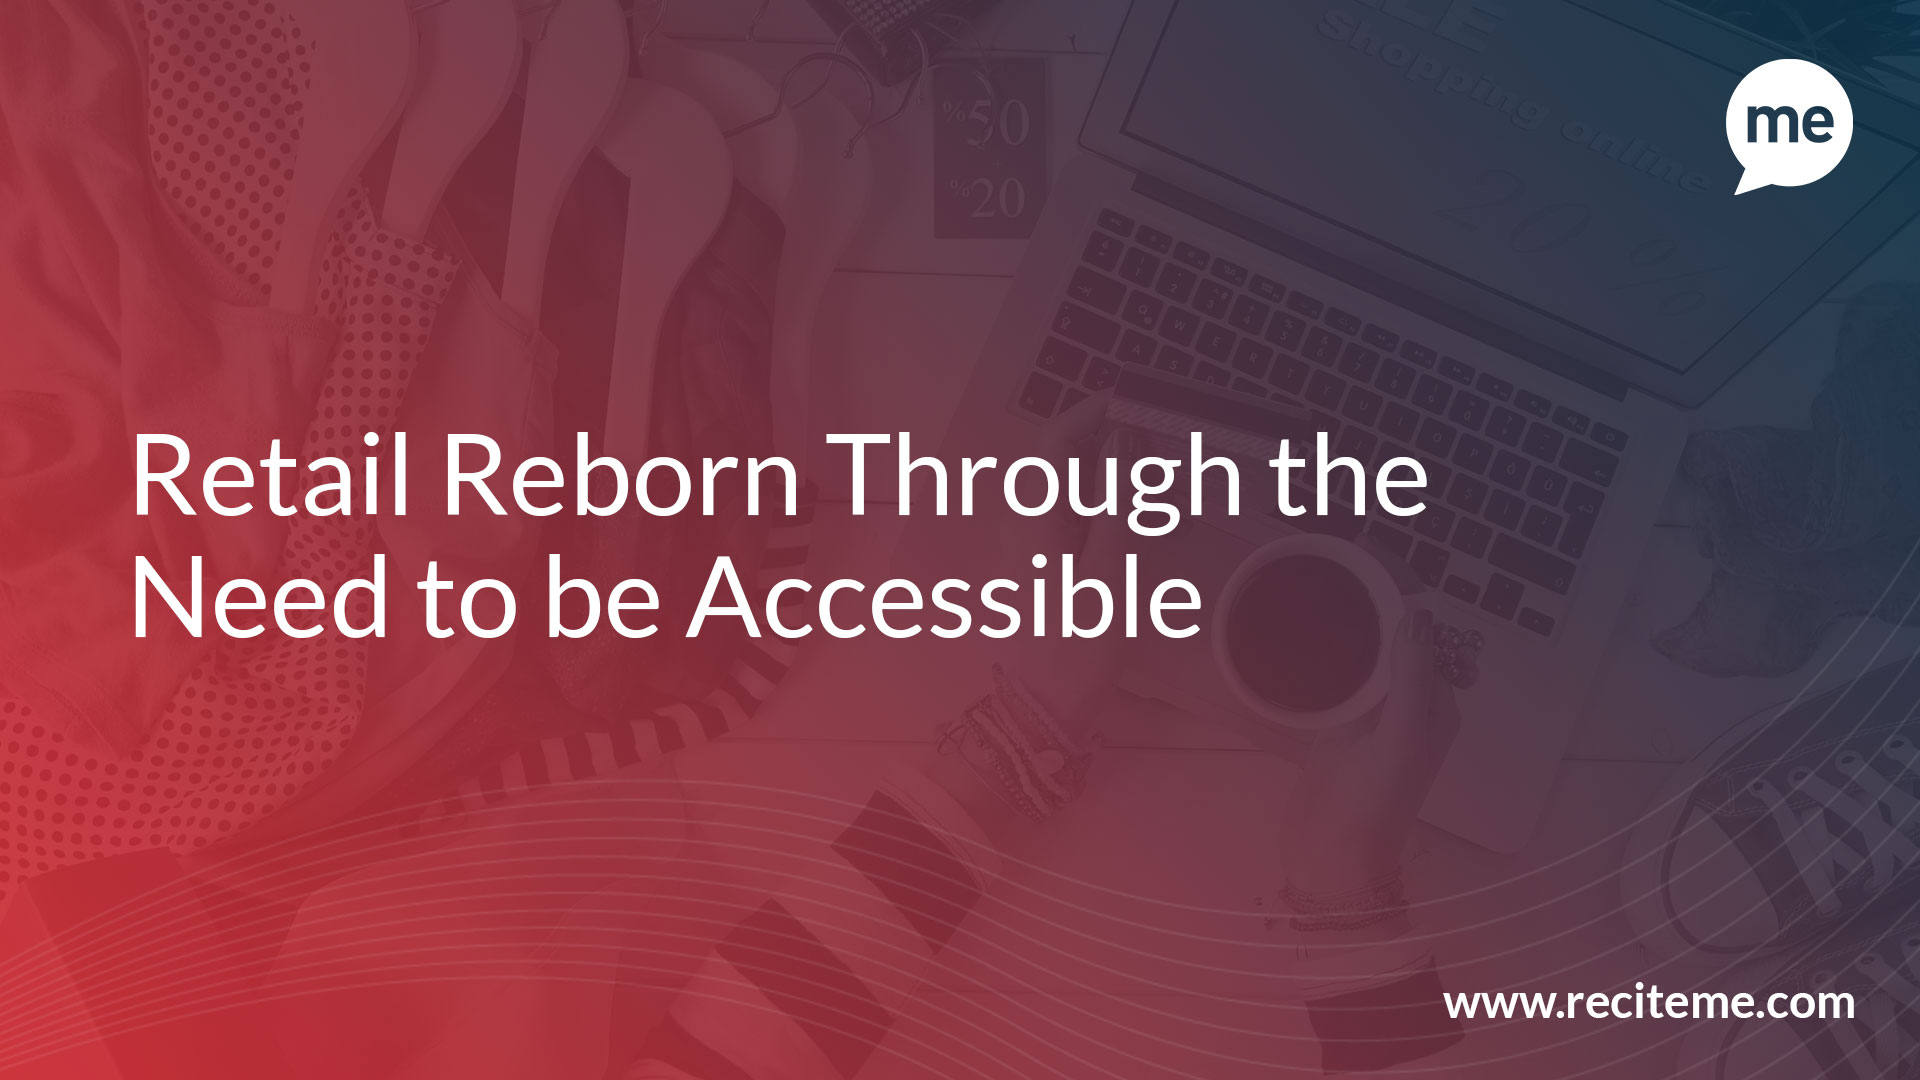 Retail Reborn Through the Need to be Accessible